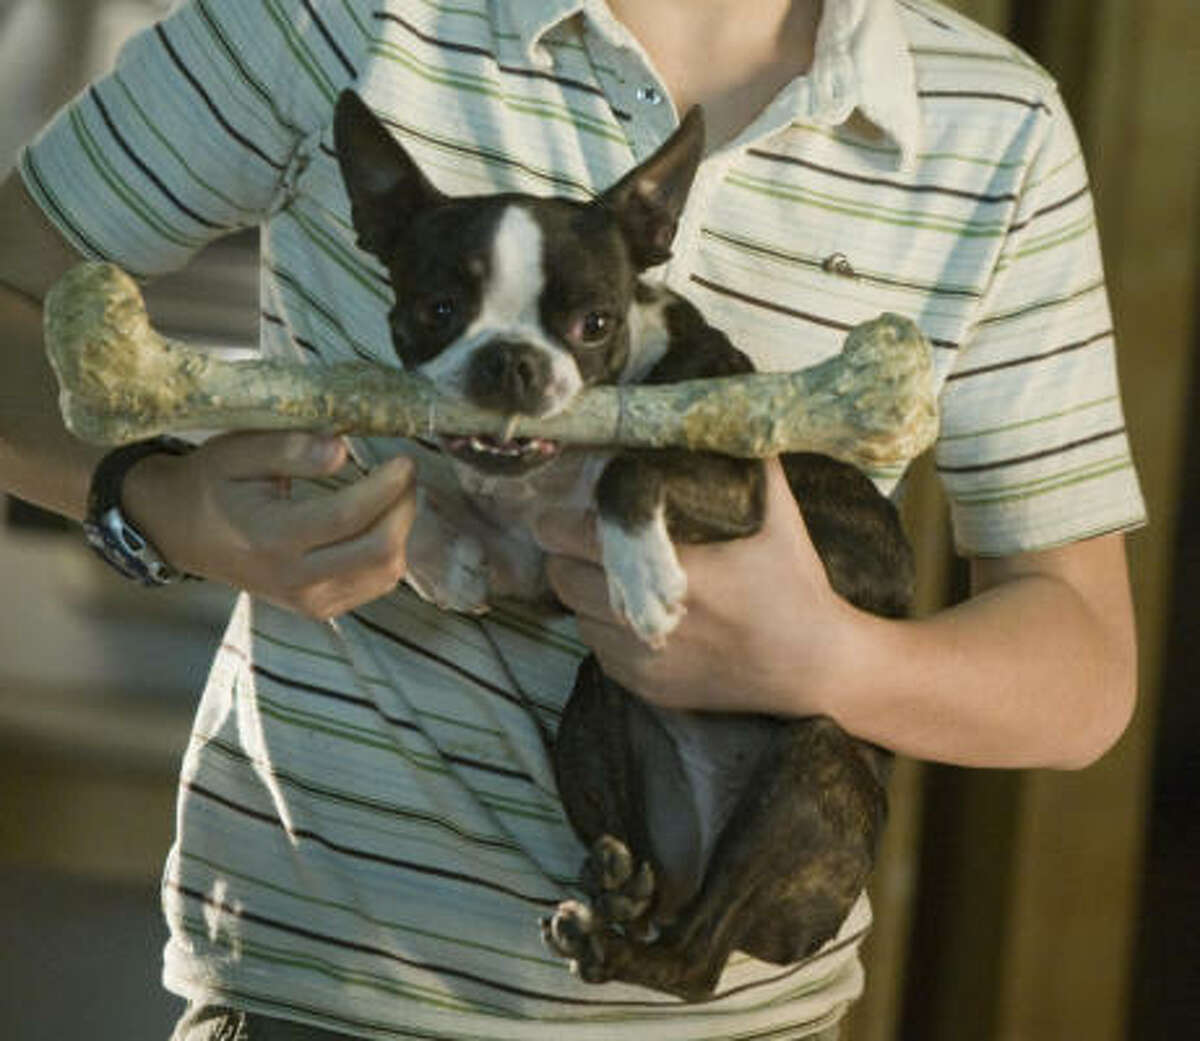 Georgia: The sweet-faced Boston terrier was one of the kids' favorites because she's small and will fetch anything.